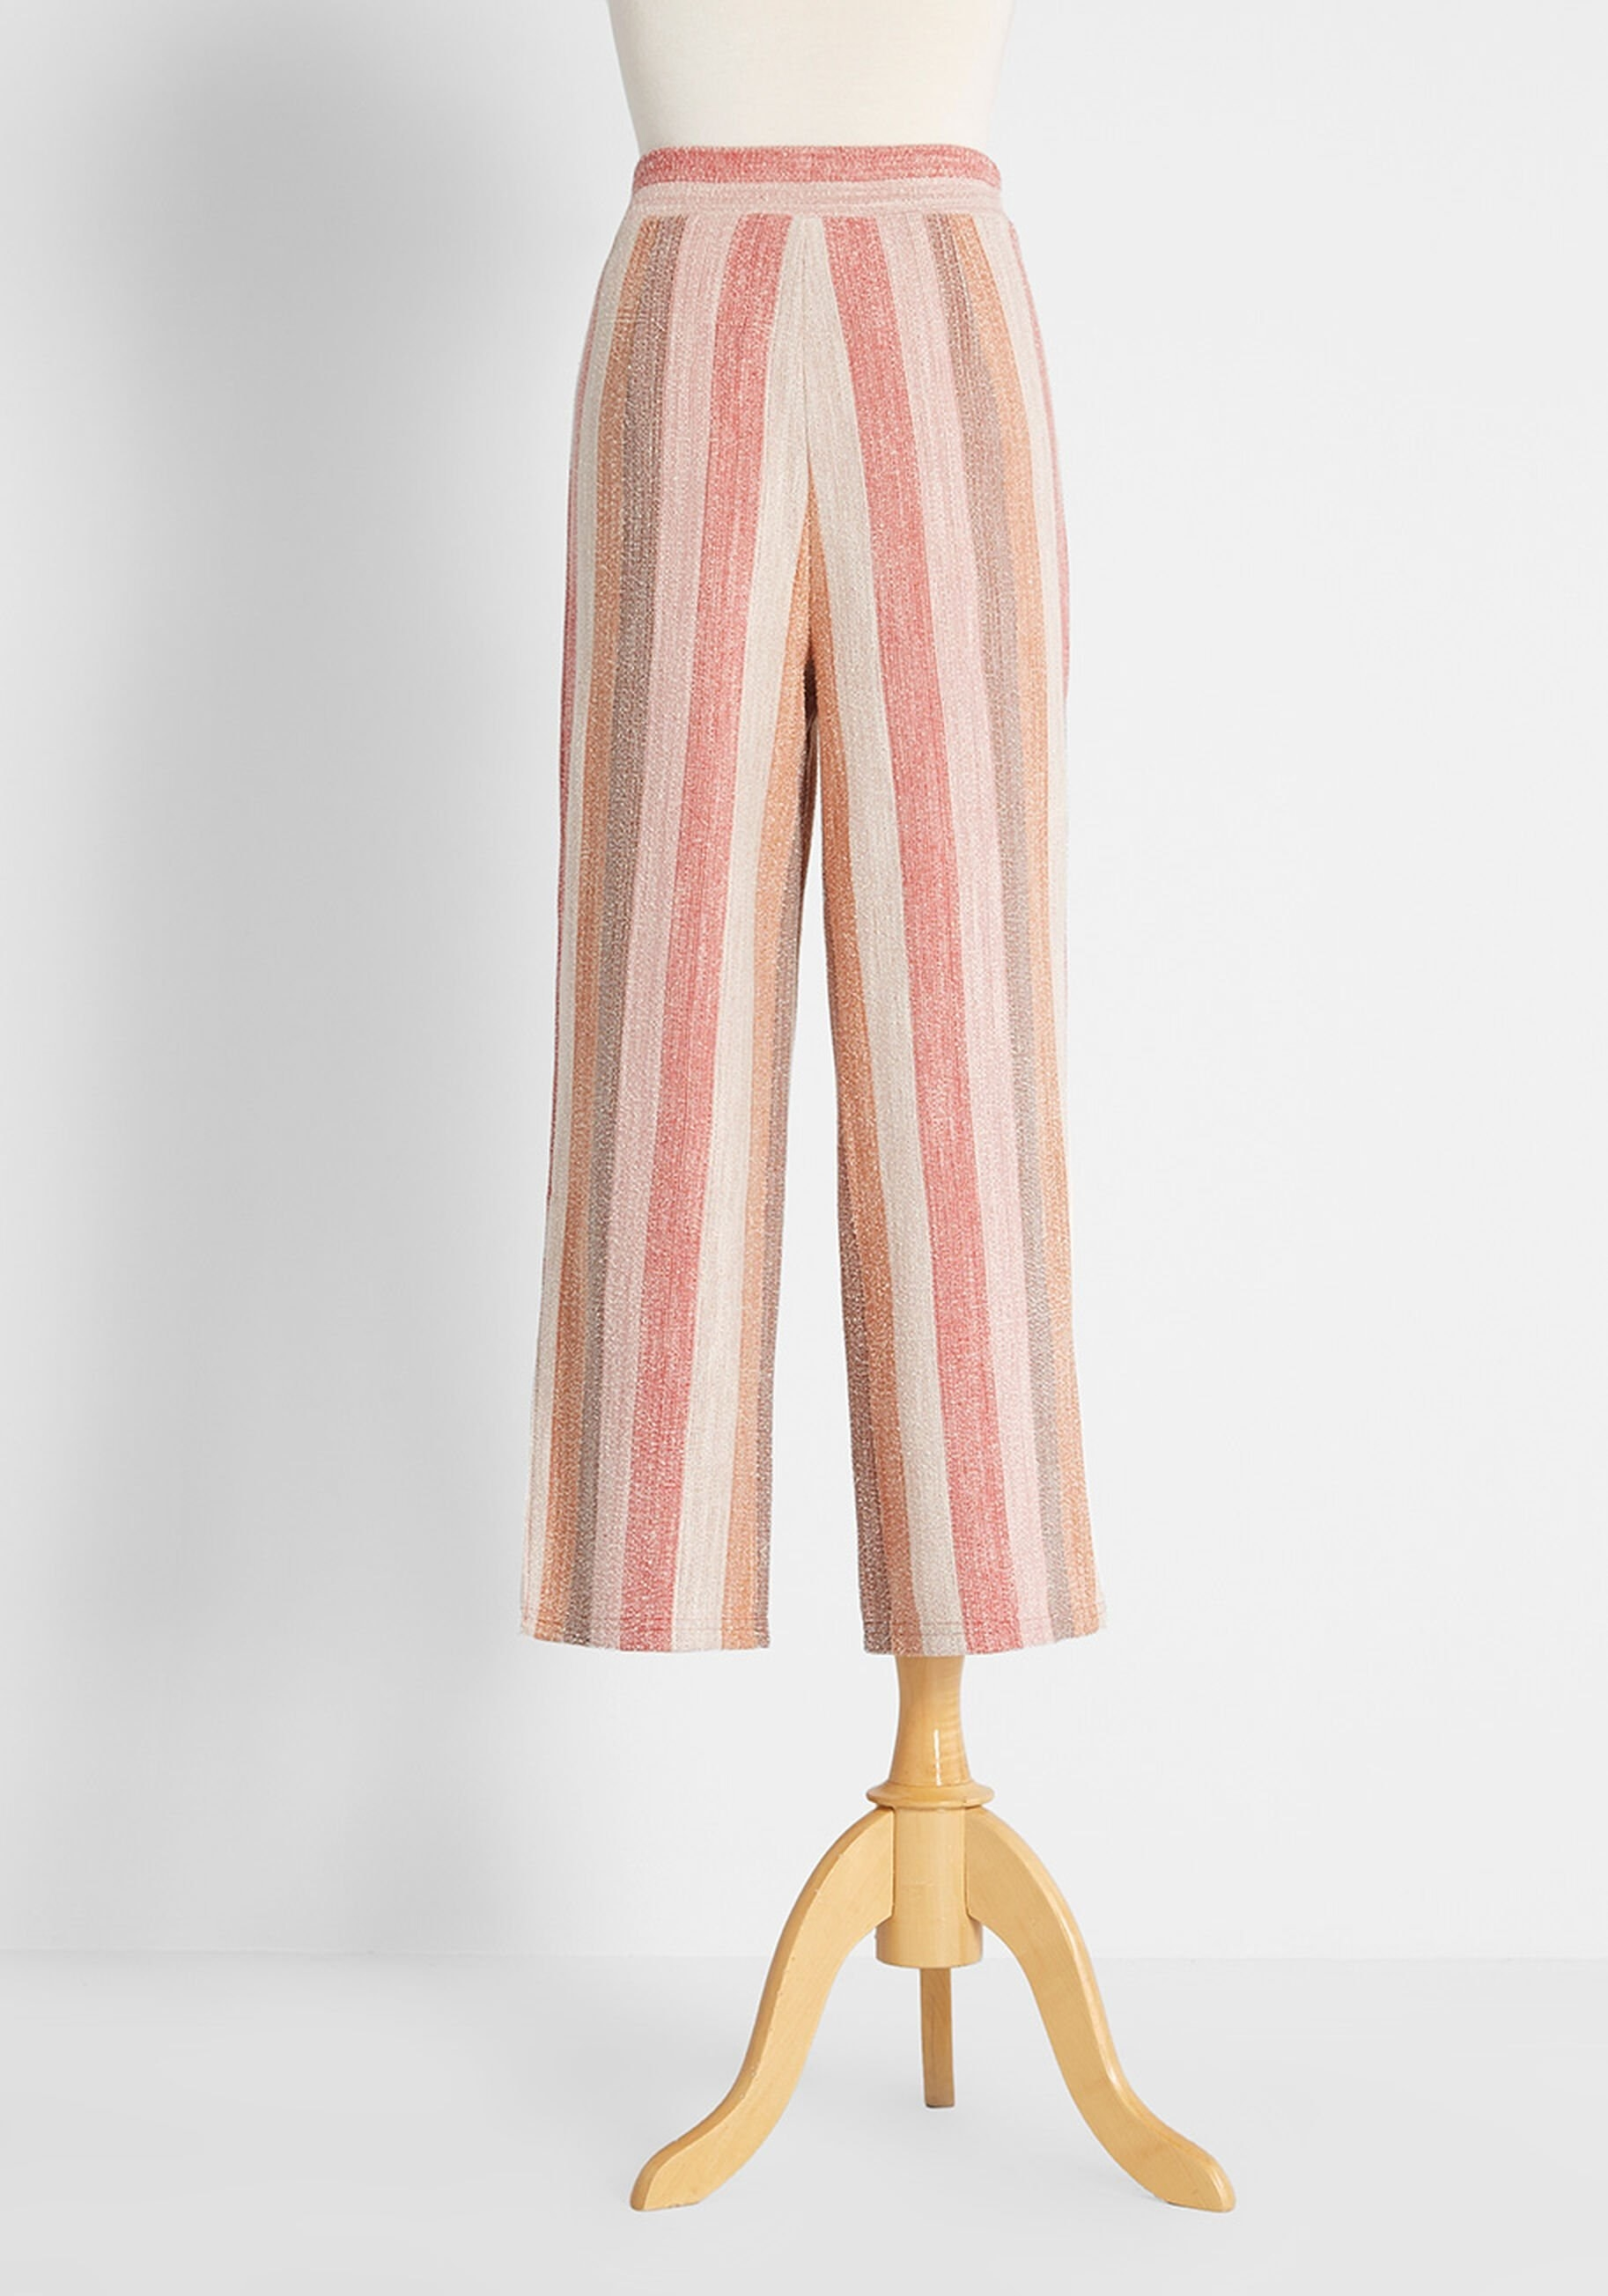 the pants in muted orange, white, pink, and tan coloring